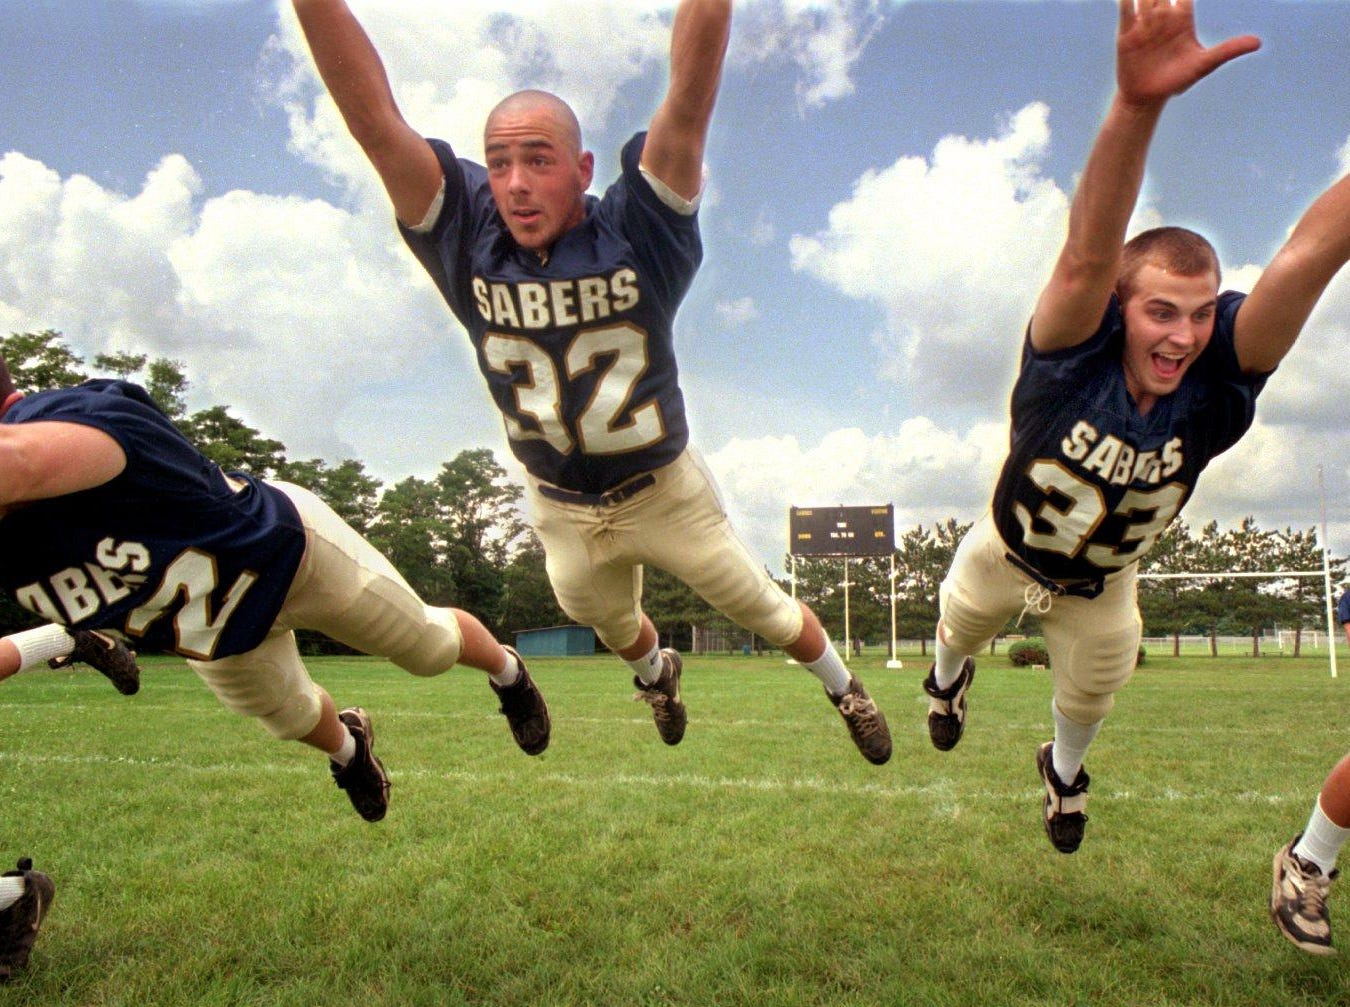 From 1996: Susquehanna Valley High School Football players Brian Beylo, no. 32, and Mark Schuster, no. 33, practice a flying drill.